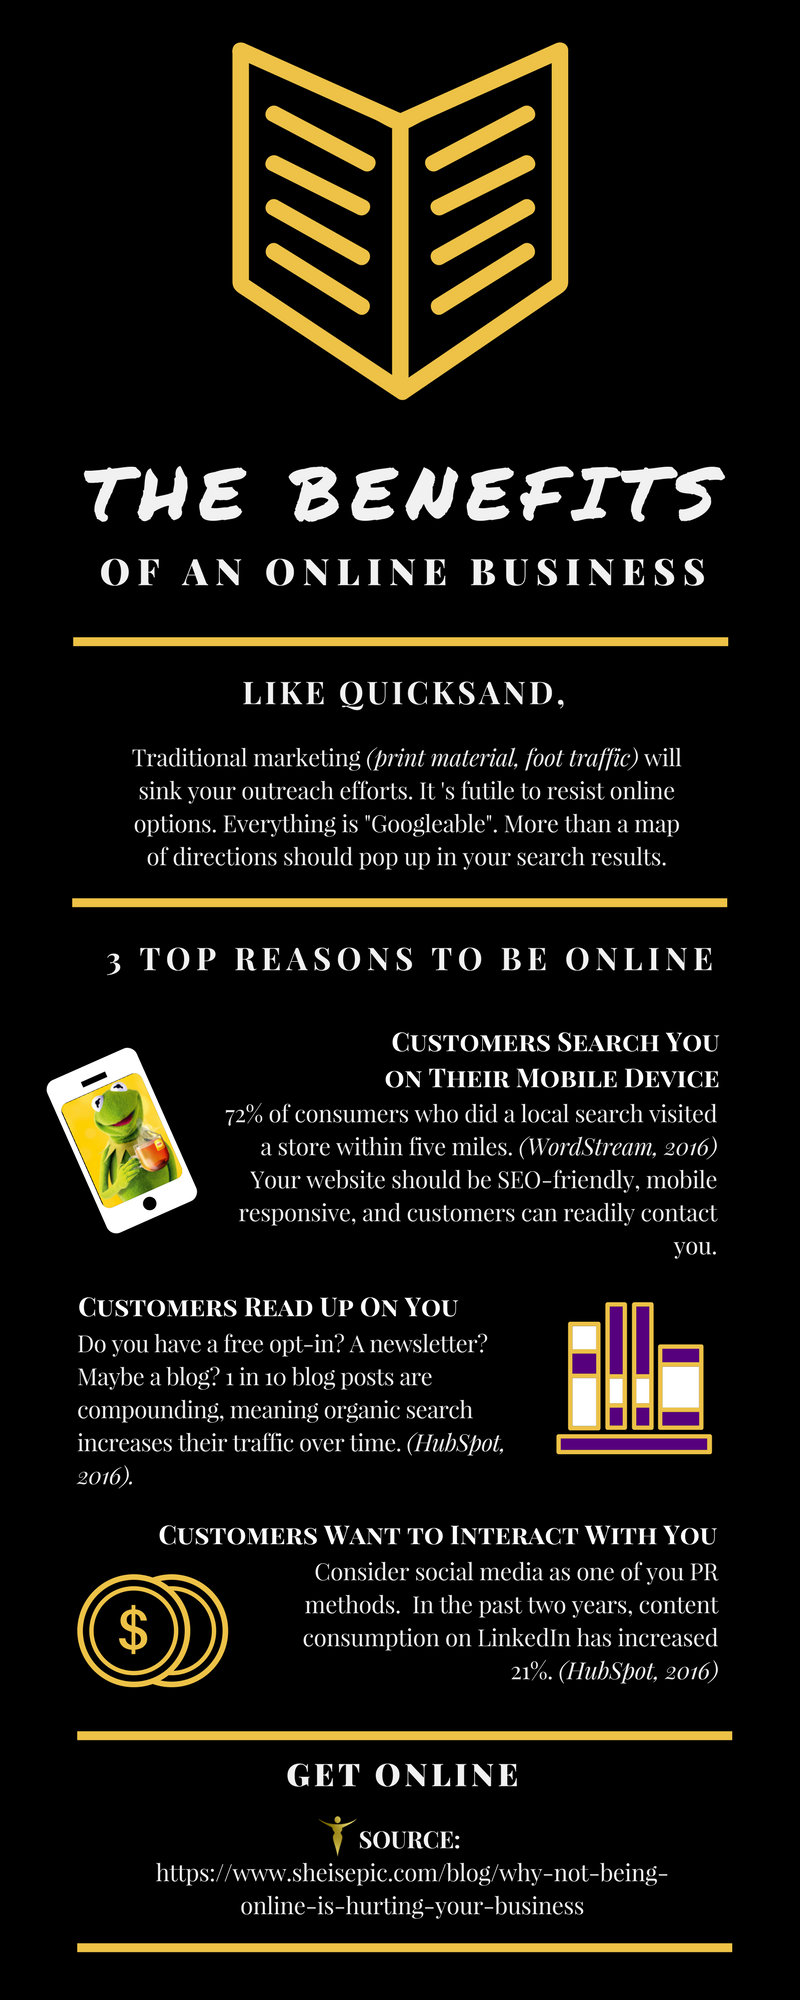 The Benefits of an Online Business